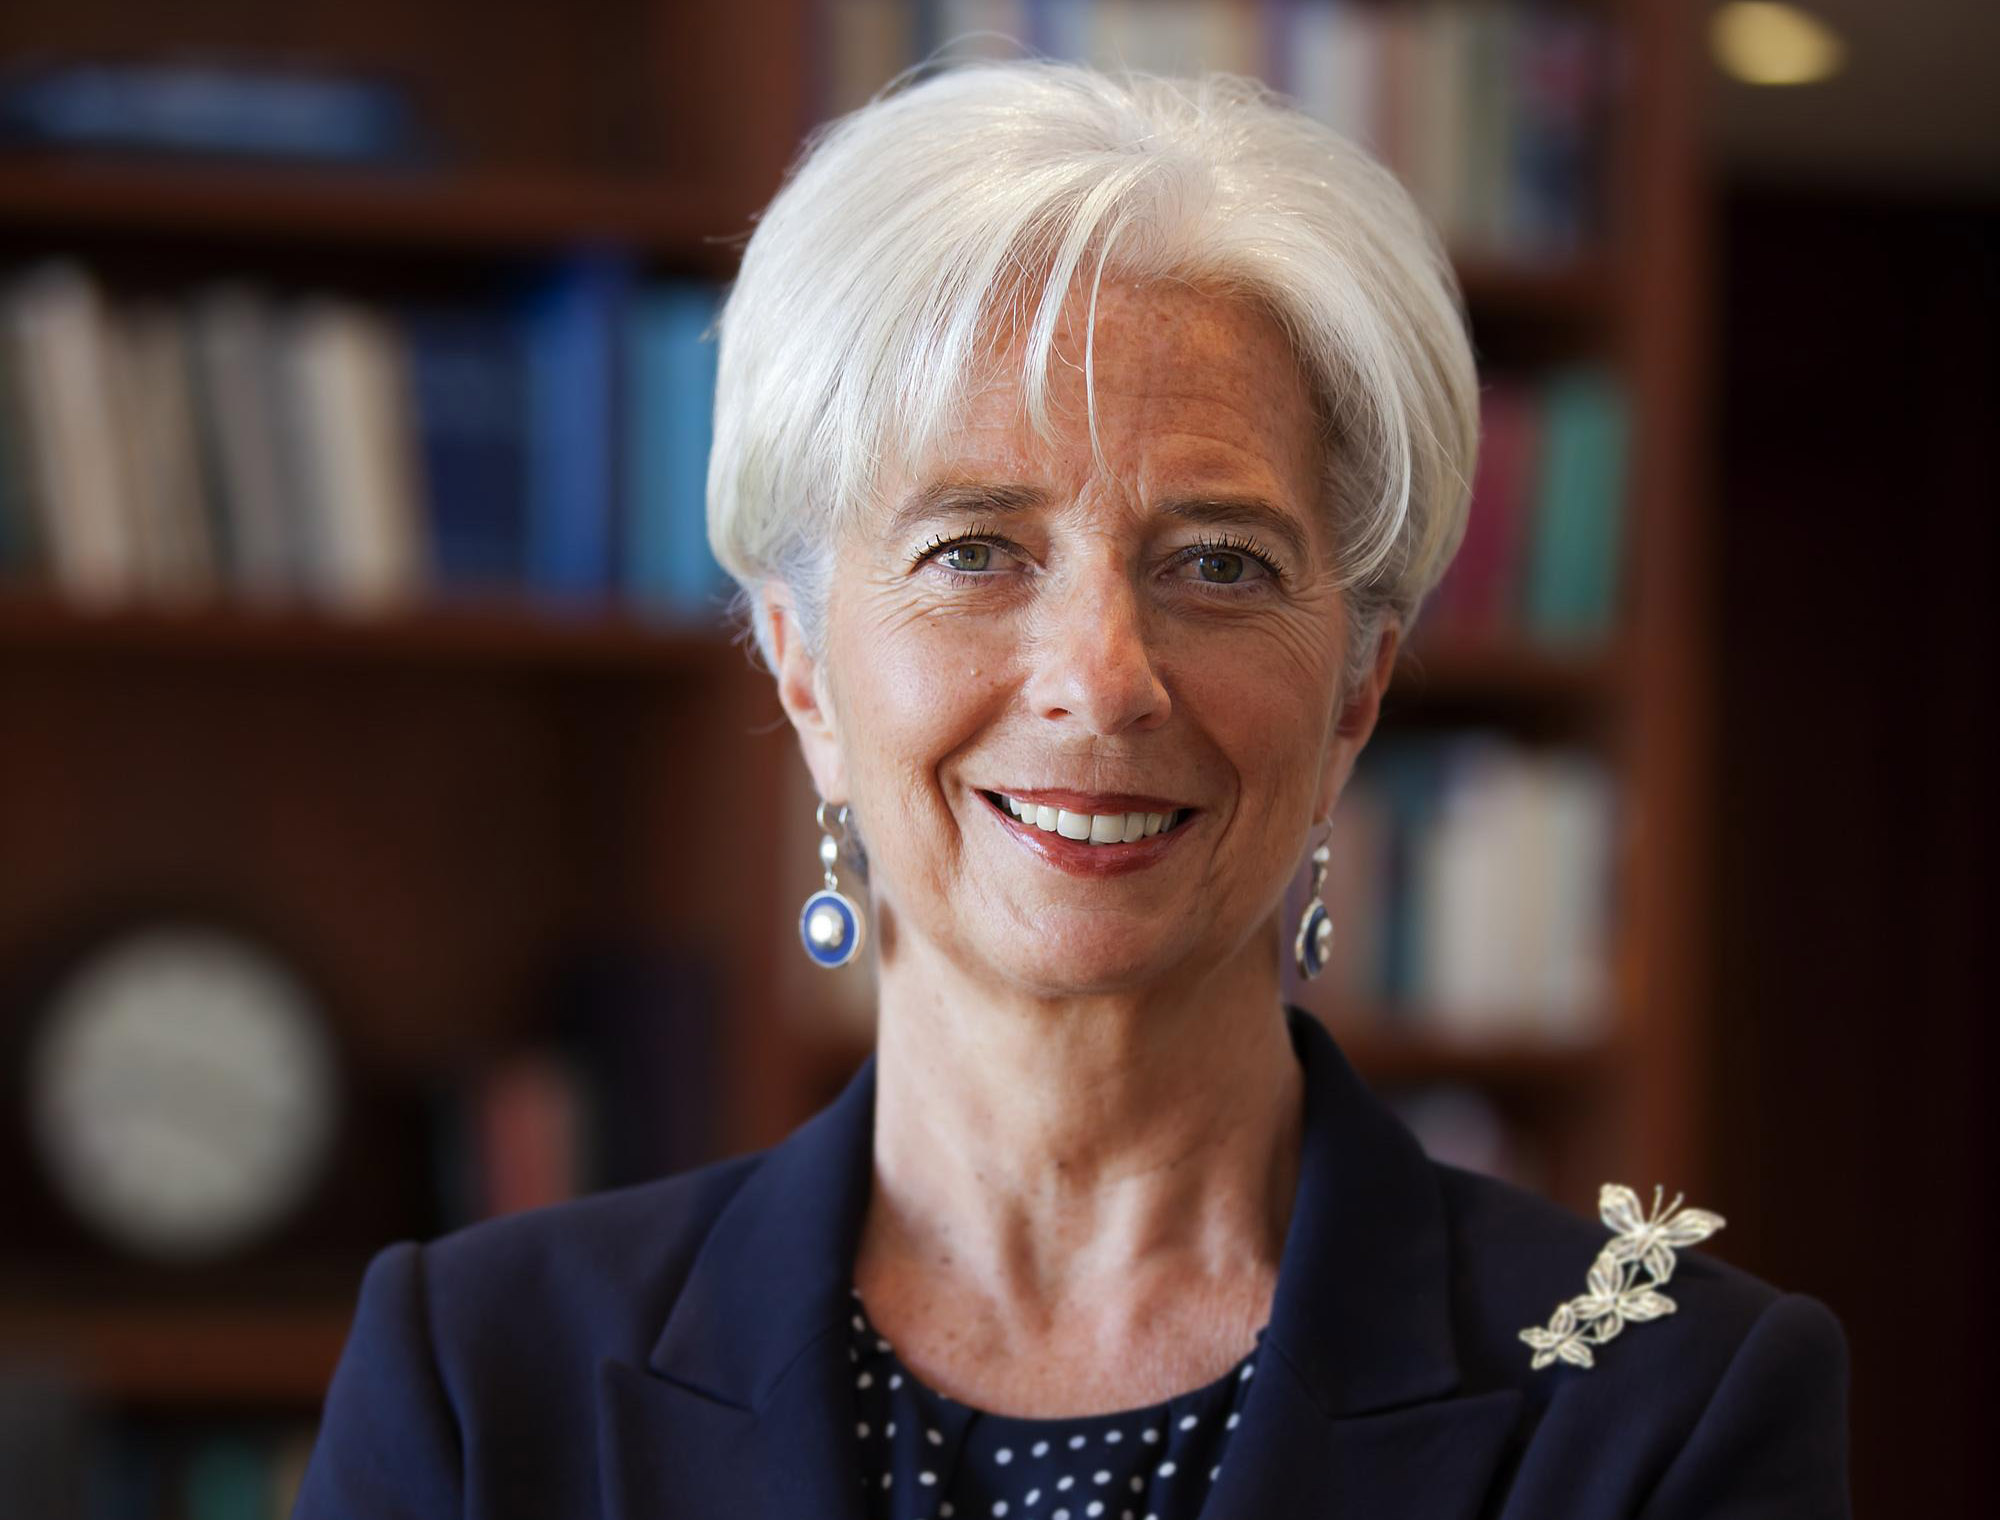 15 Startup Lessons From IMF Chief Christine Lagarde On Her Visit to